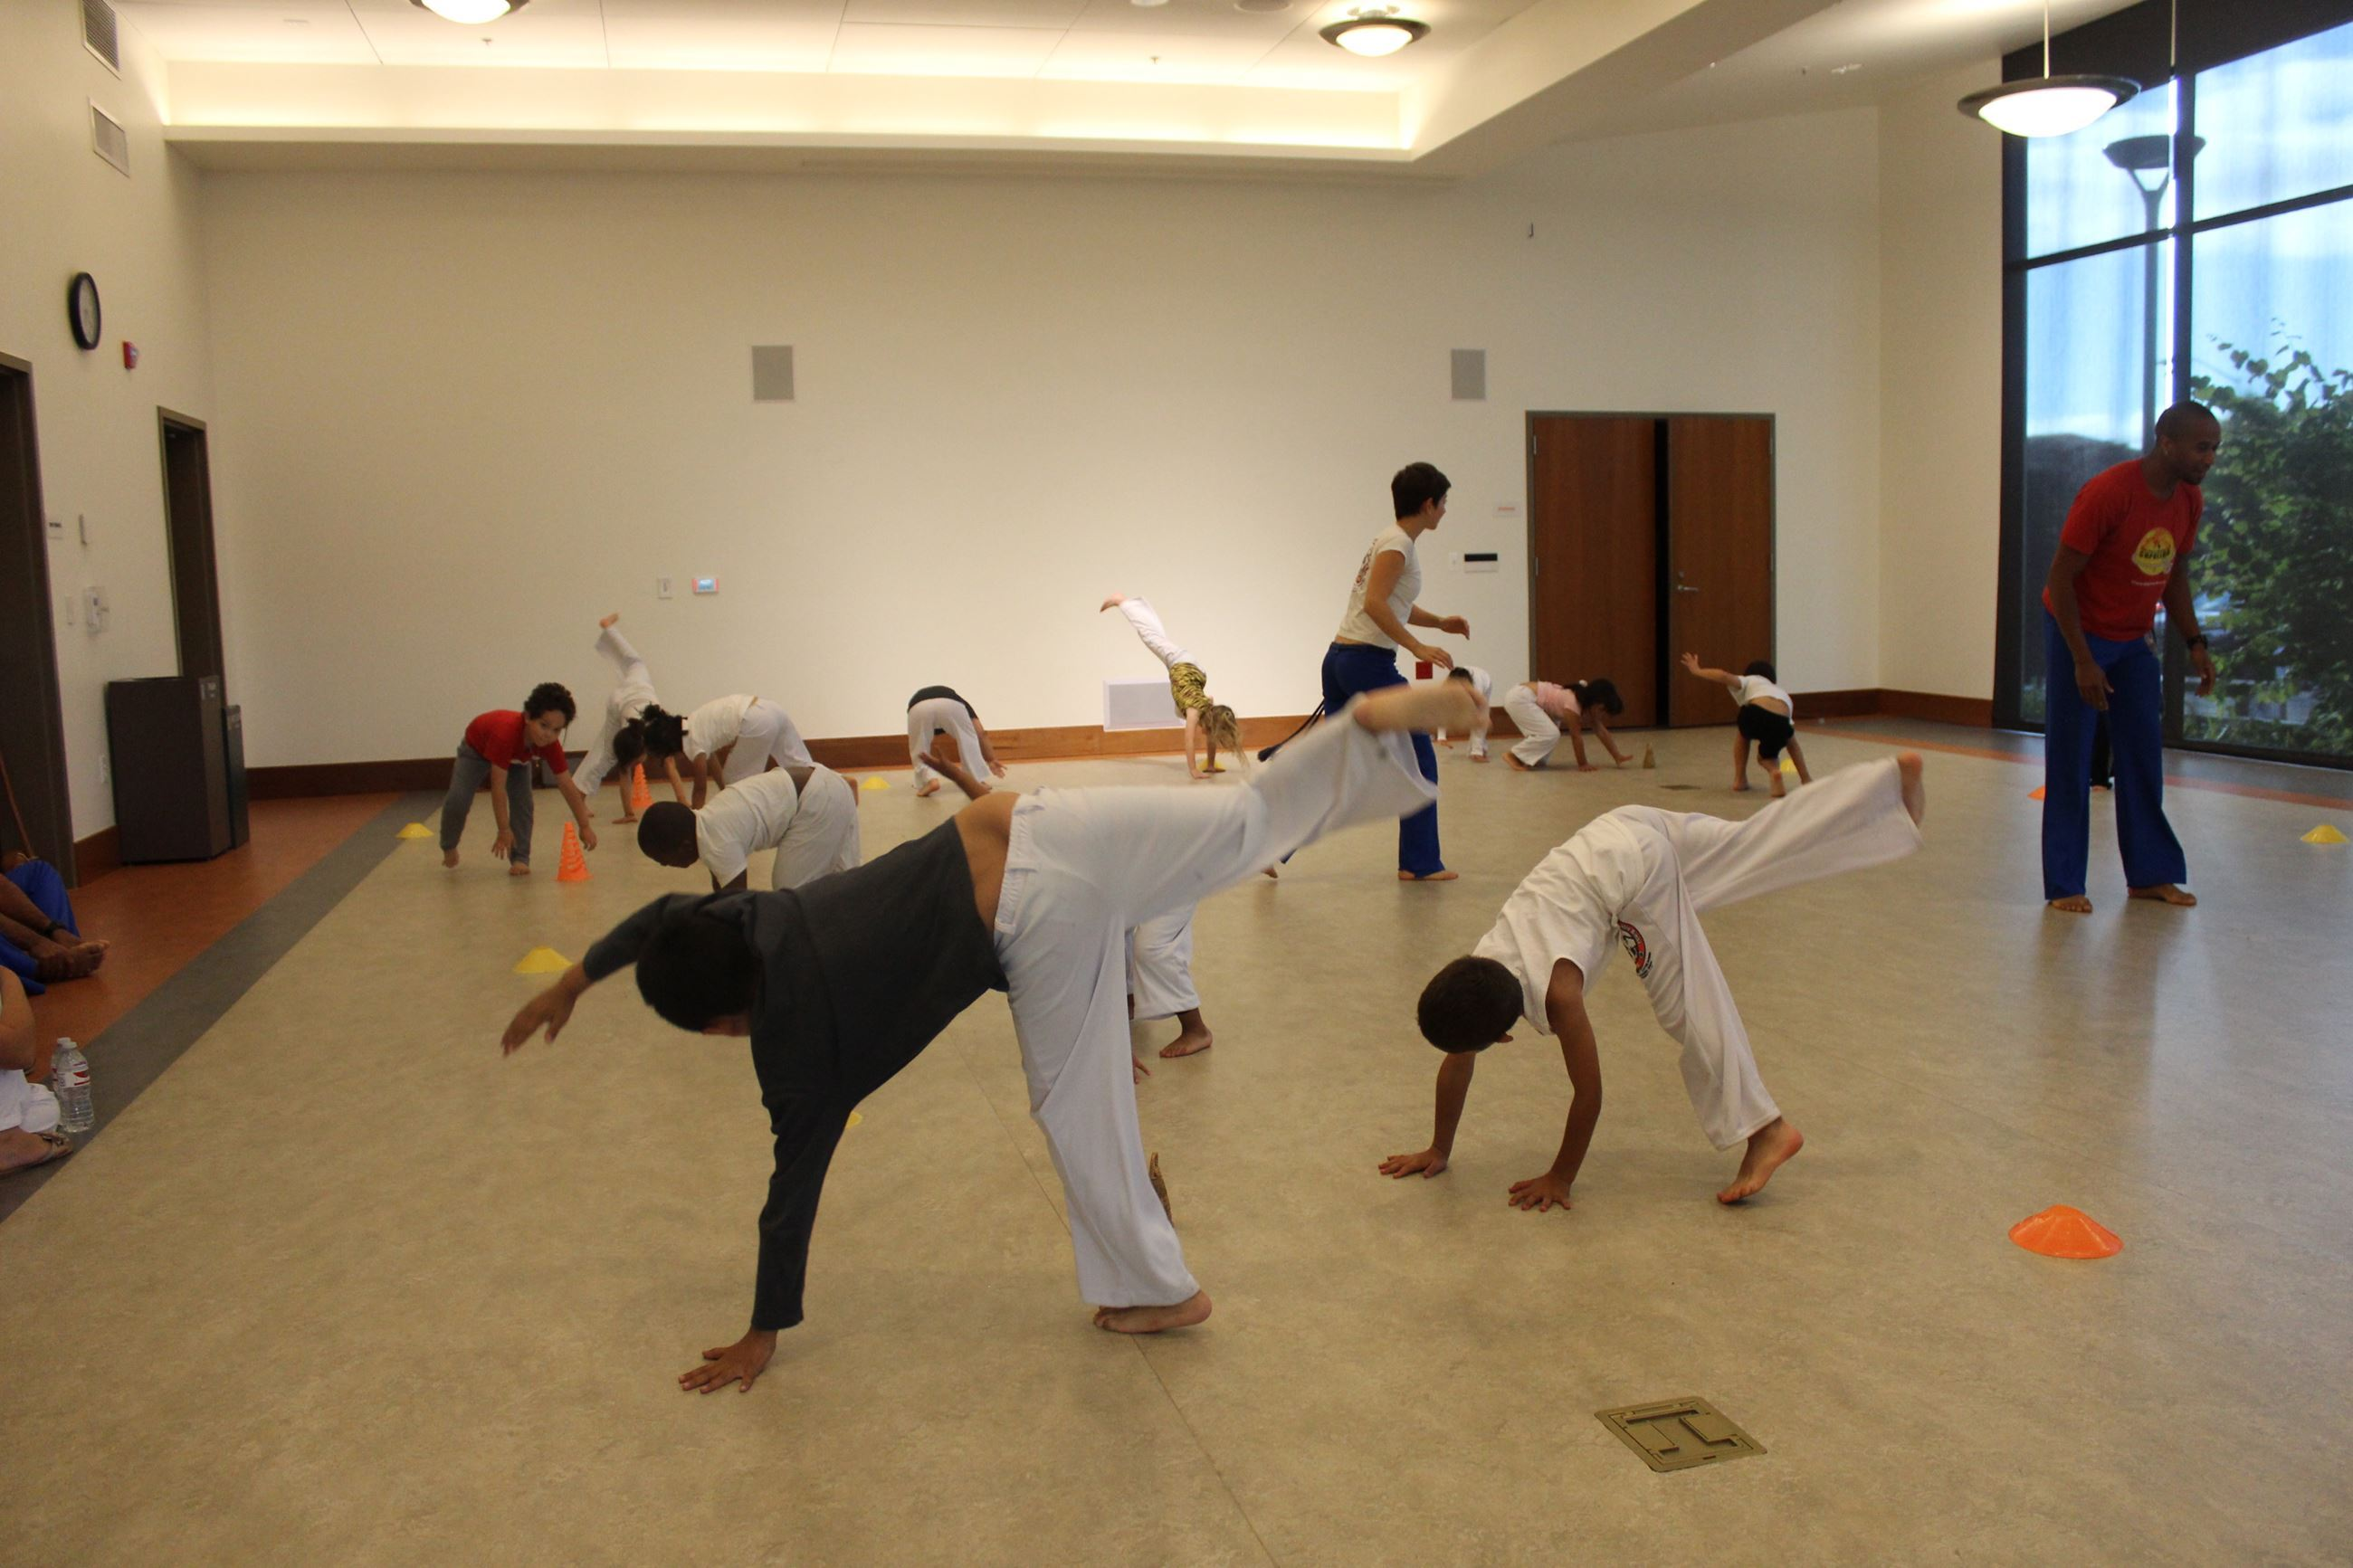 Capoeira participants kicking